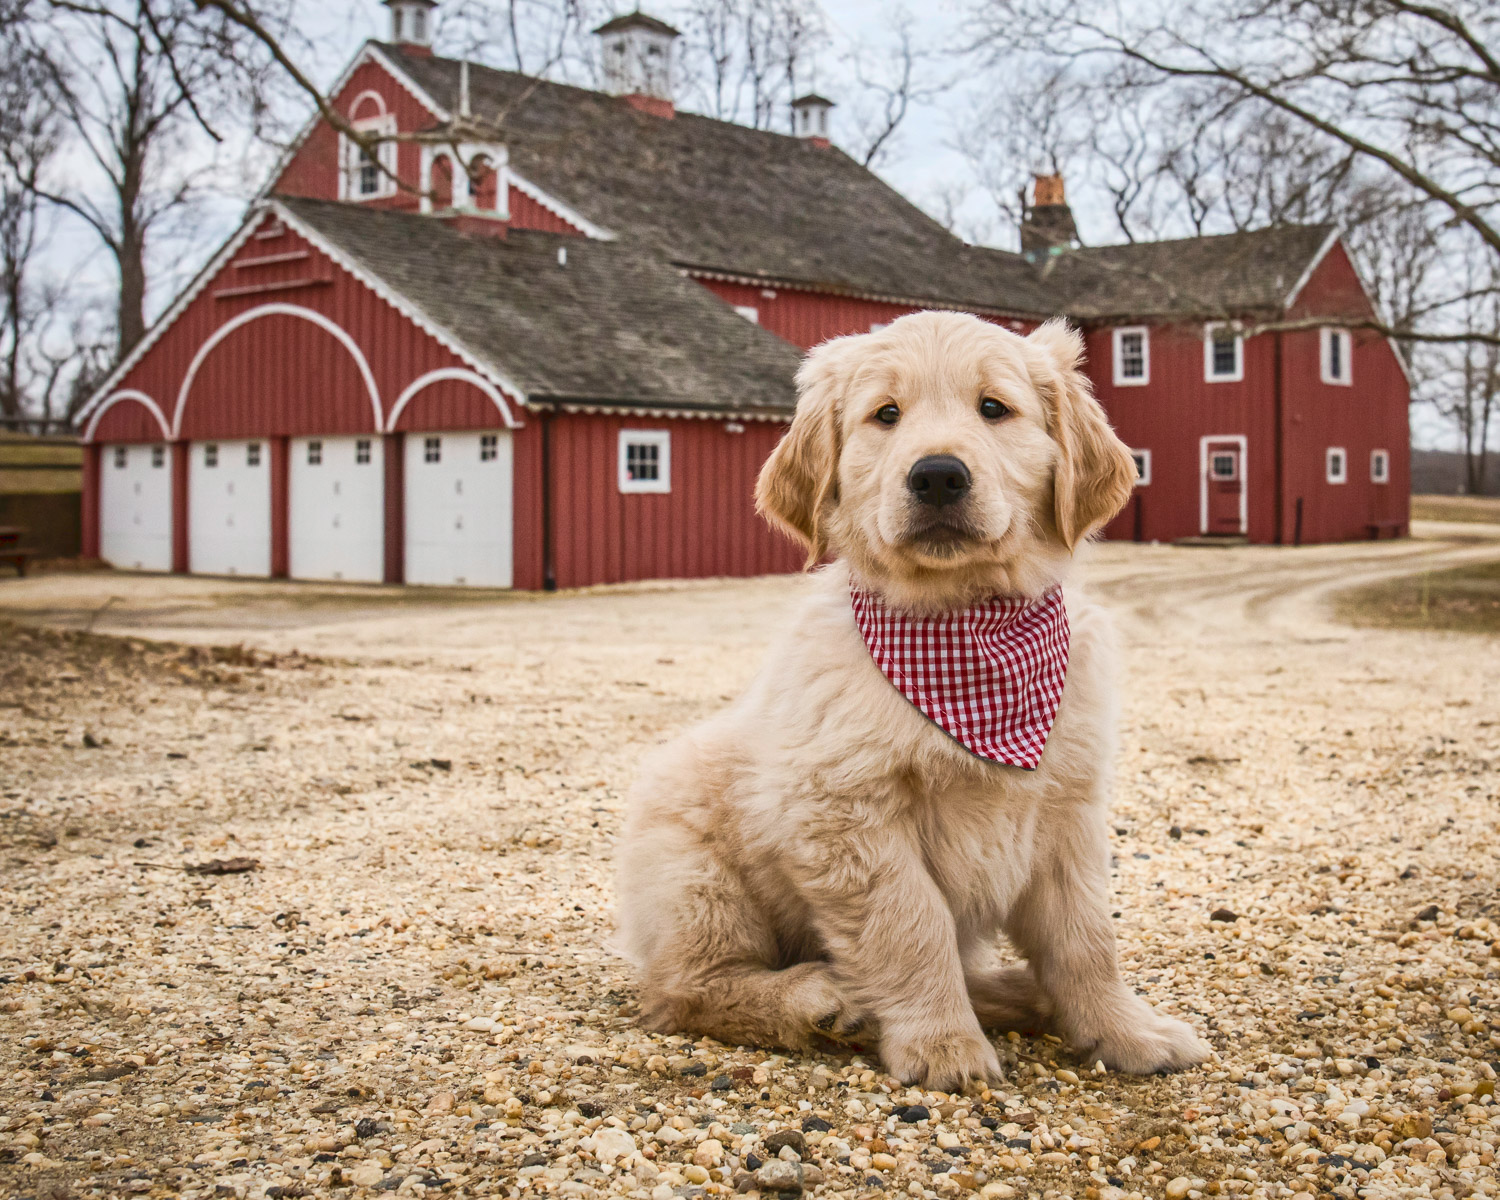 Precious photo of a puppy on the farm